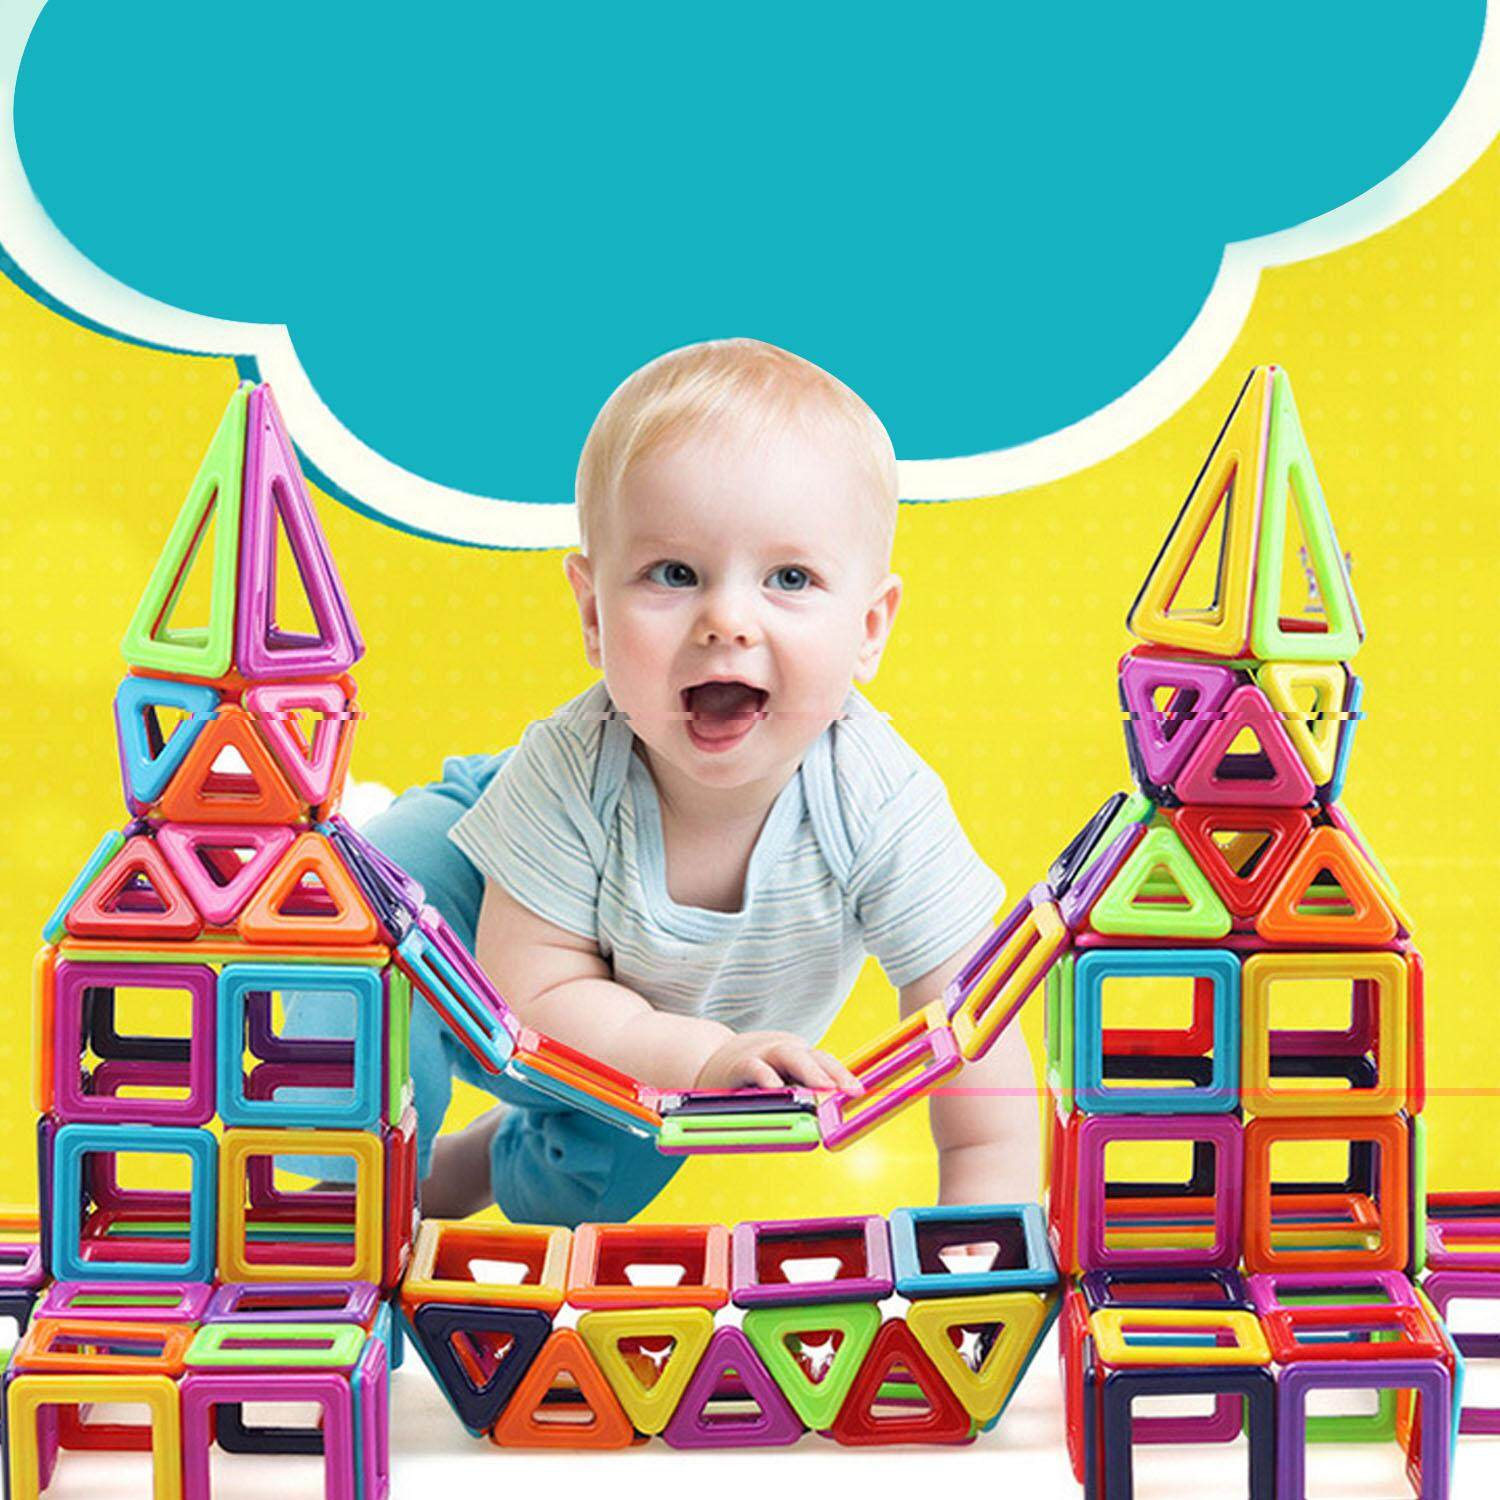 Elek 76pcs Magnetic Blocks Building Set Kids Building Construction Stacking Blocks Educational Toys Kit For Kindergarten Children Kids Random Color By Elek.